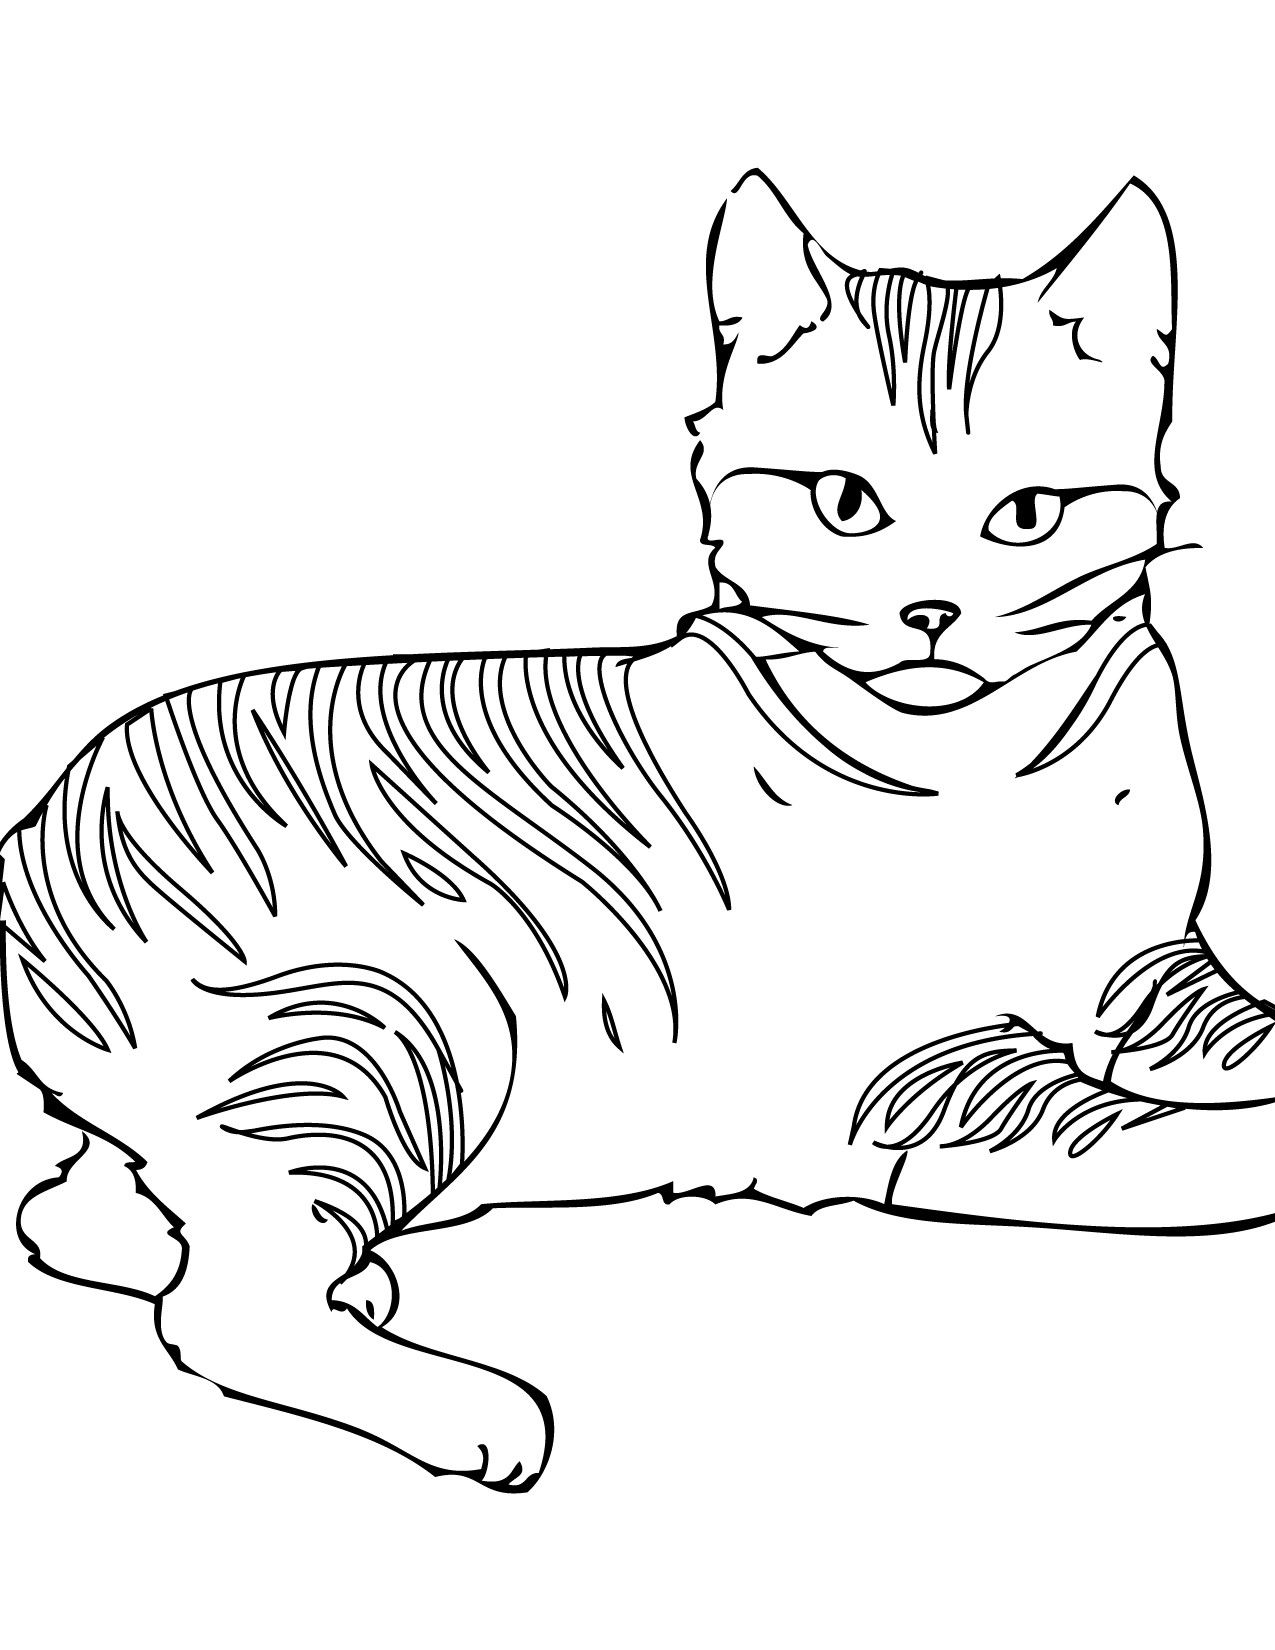 Cat Coloring Page For Kids In 2020 Cat Coloring Book Cat Coloring Page Kittens Coloring